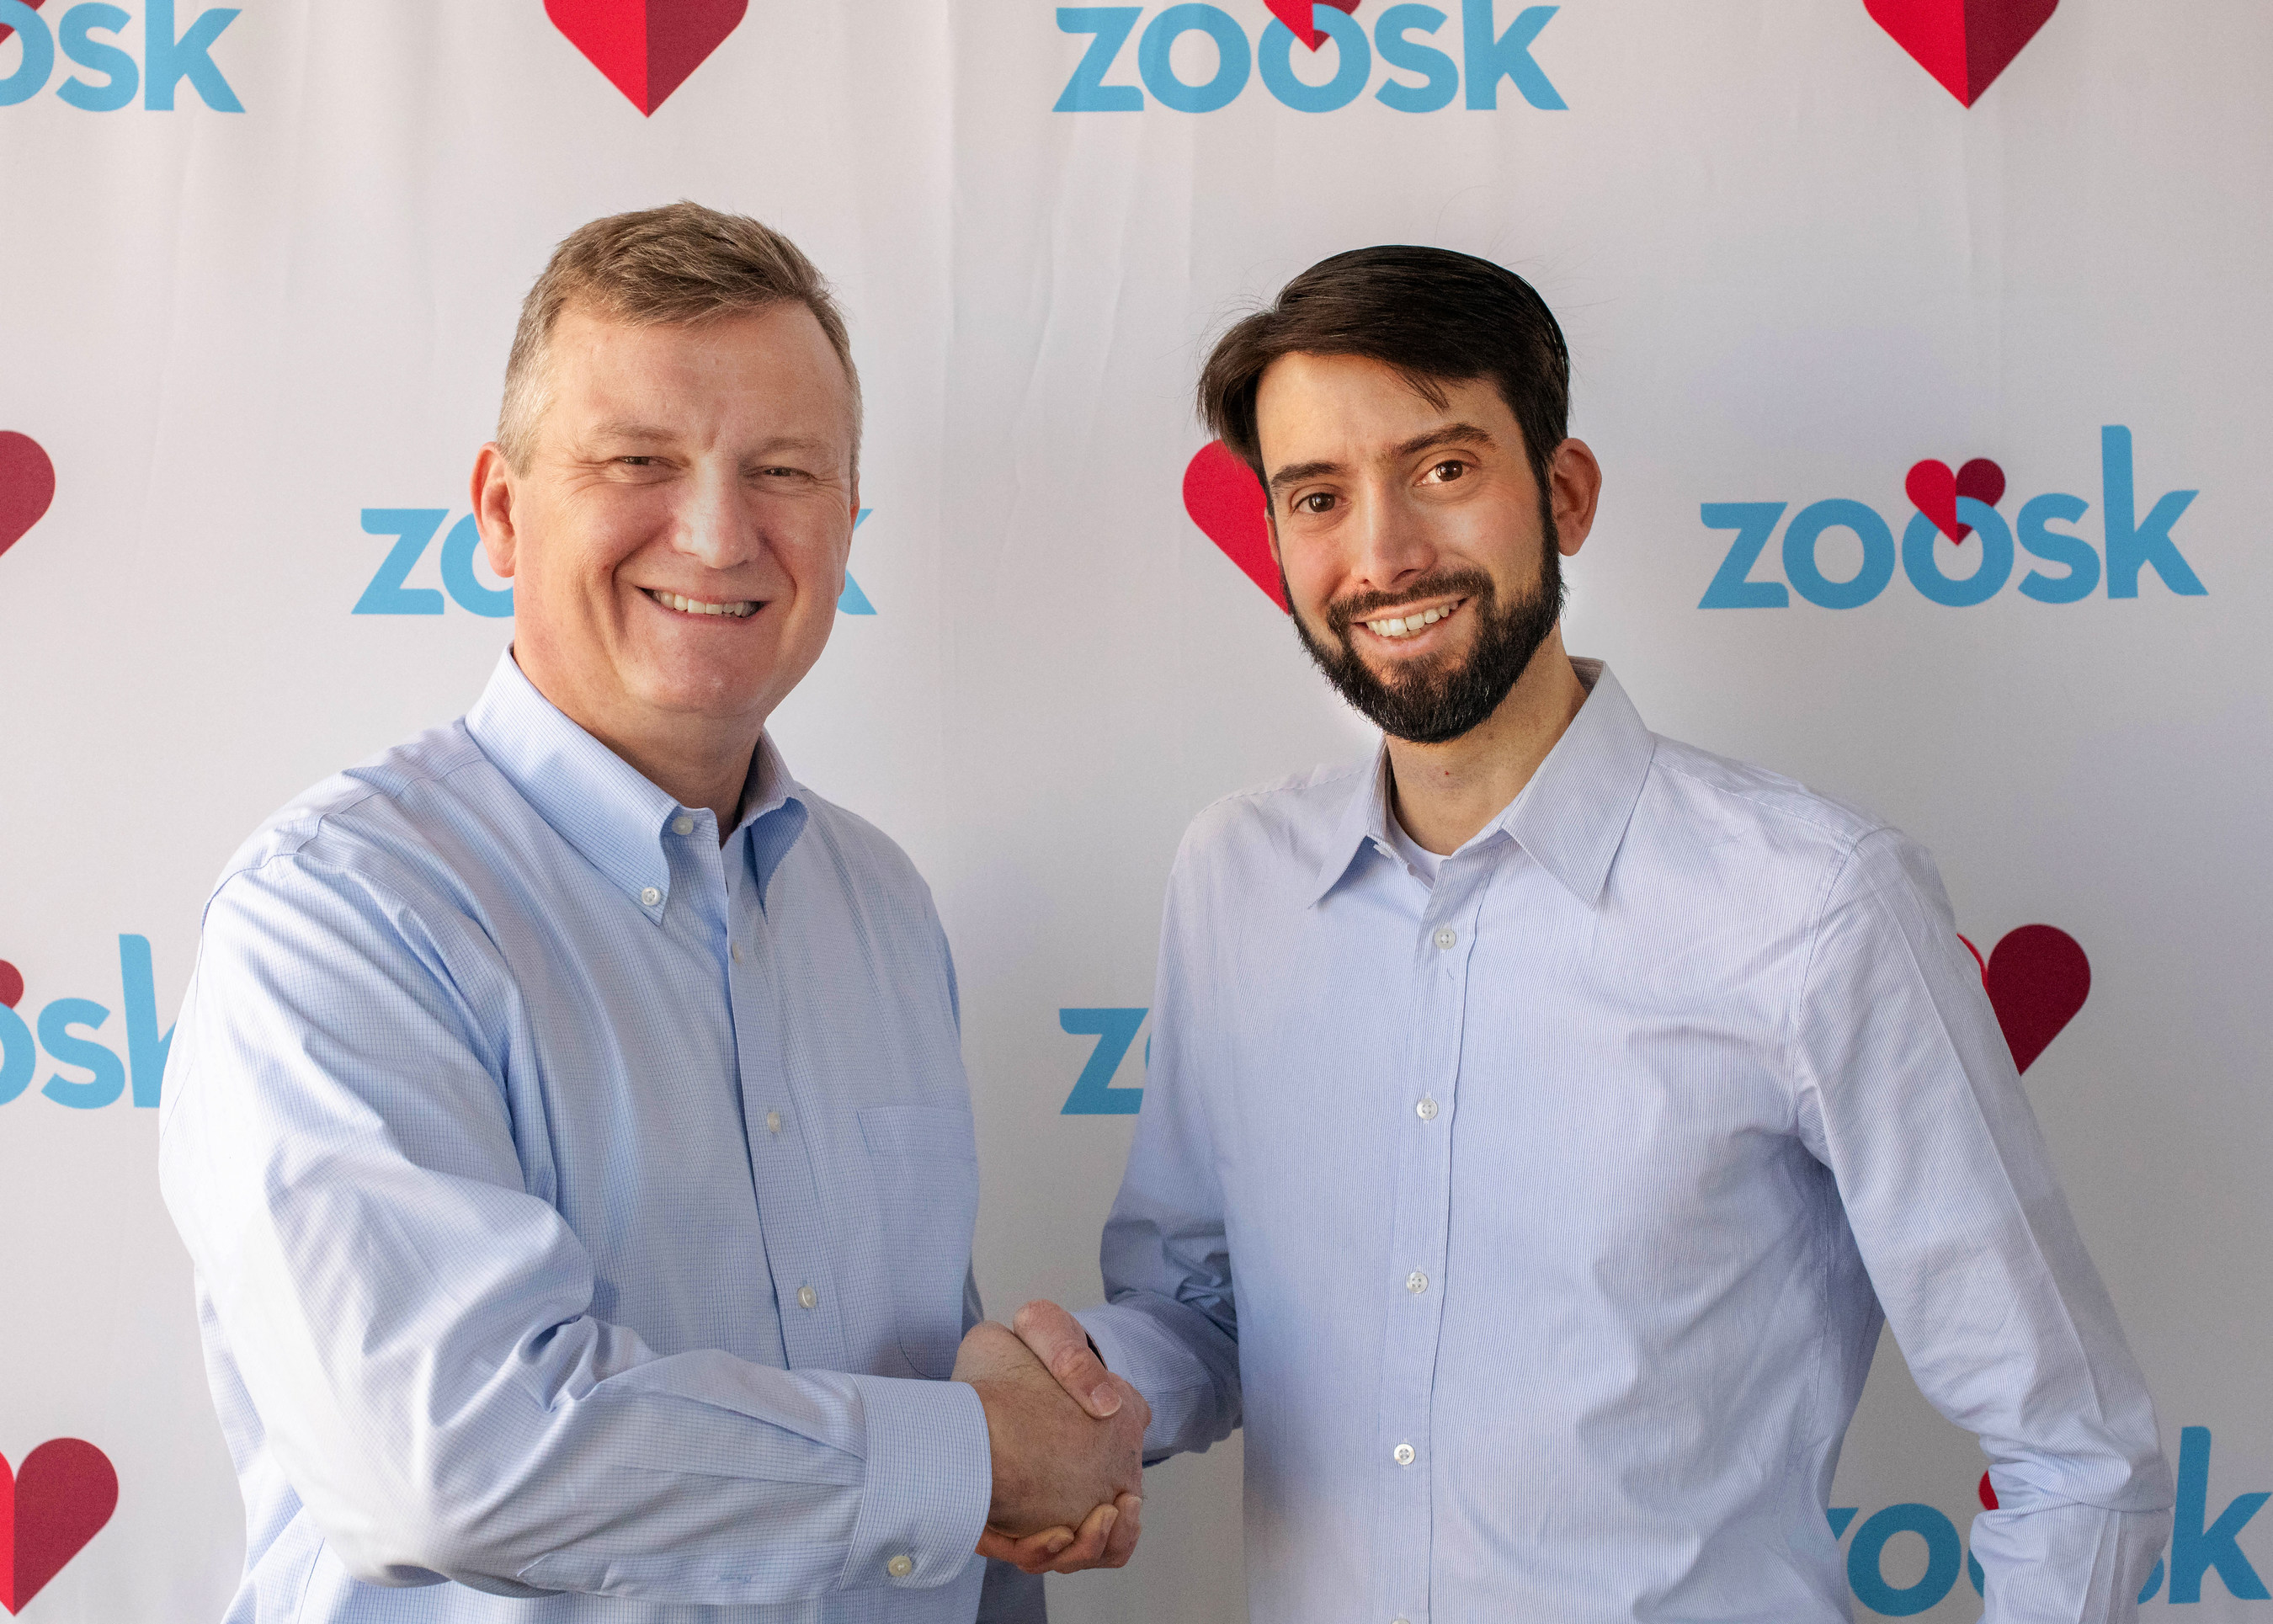 Spark Networks Closes Zoosk Acquisition